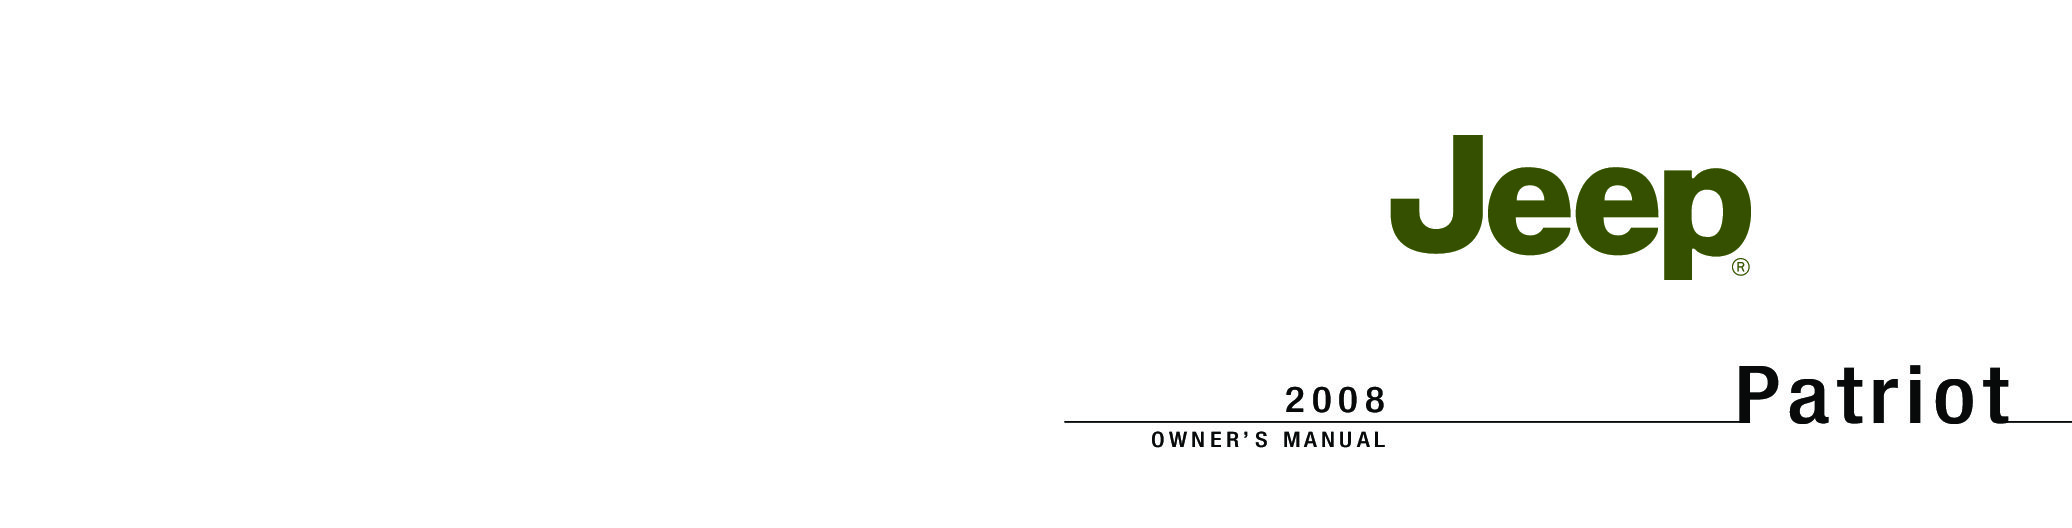 2000 jeep wrangler owners manual pdf